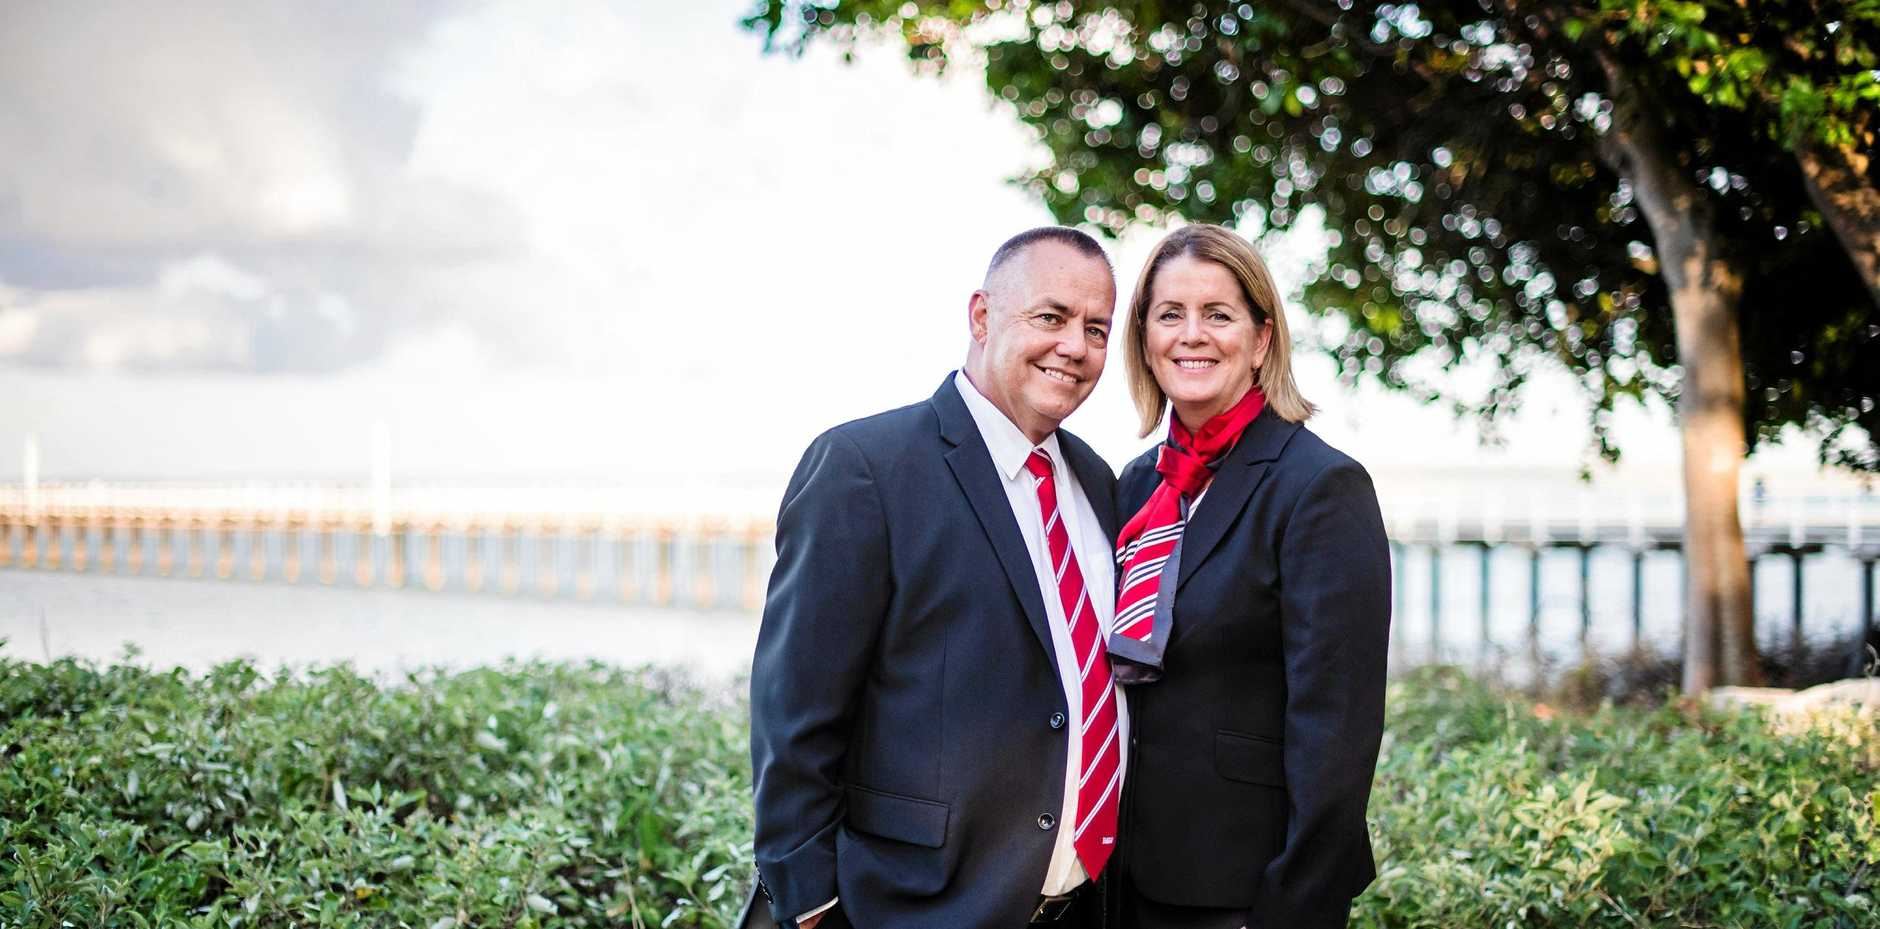 BACK IN THE BAY: Dirk and Sally Van Den Heuvel have opened a R&W Bespoke real estate agency in Hervey Bay. The two returned to the area a few years ago after a brief absence.